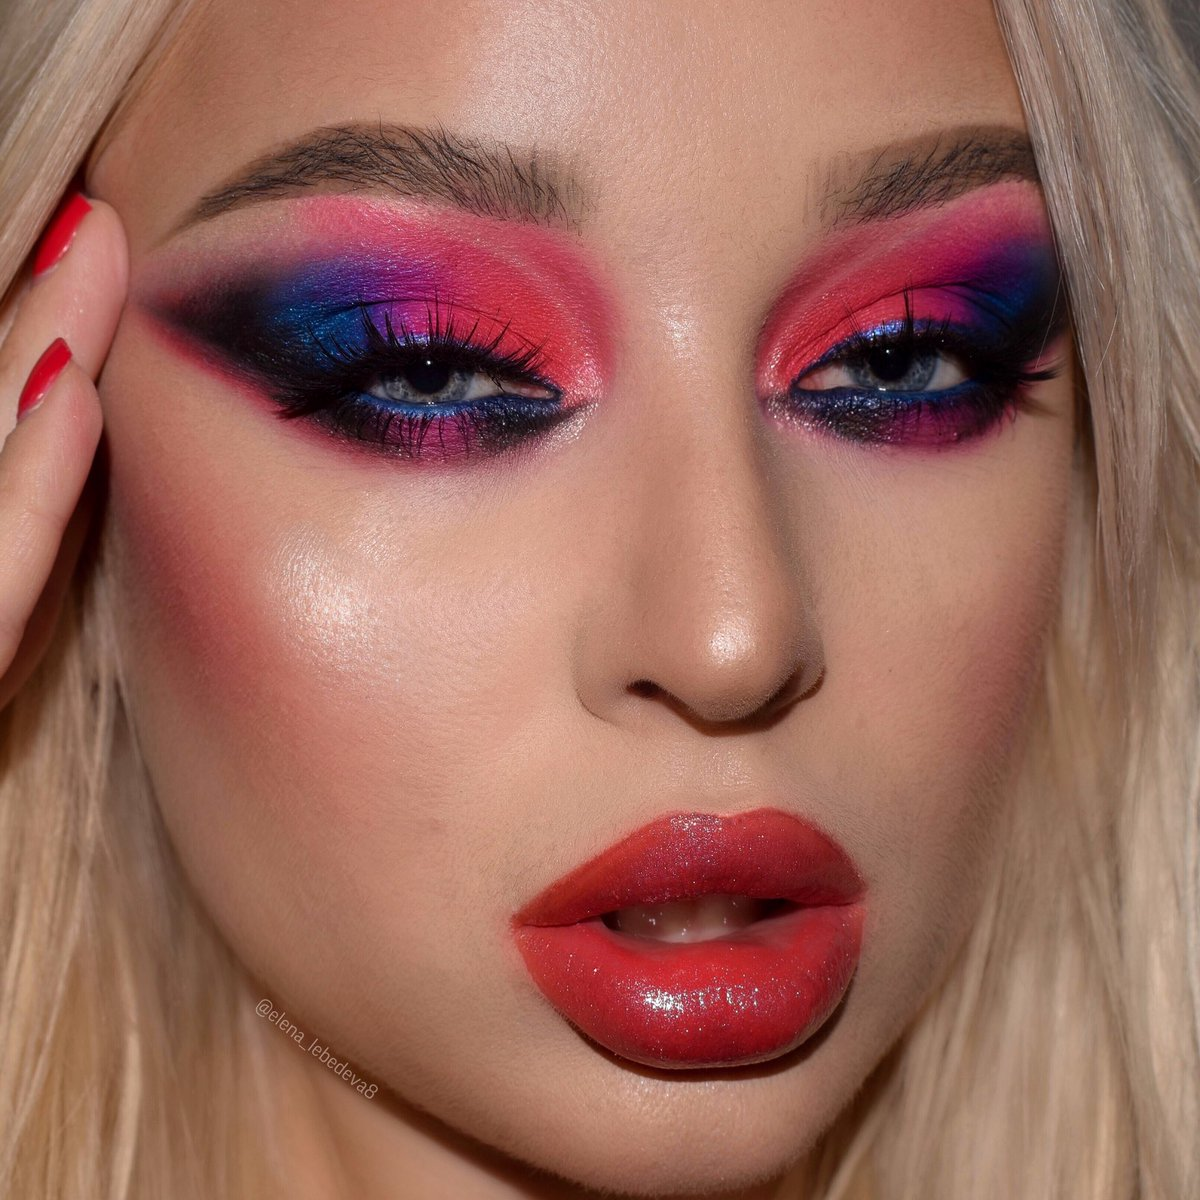 Do you like it? . Yeeeesss babe! Used: Eyeshadow @ColourPopCo blue moon, smoke snow palette No filter concealer Brows @ABHcosmetics brow powder duo color Taupe Eyeshadow Riviera palette Highlight @MACcosmetics hyper real glow Eye pencil @UrbanDecay Roxypic.twitter.com/Od7SUkwwFw